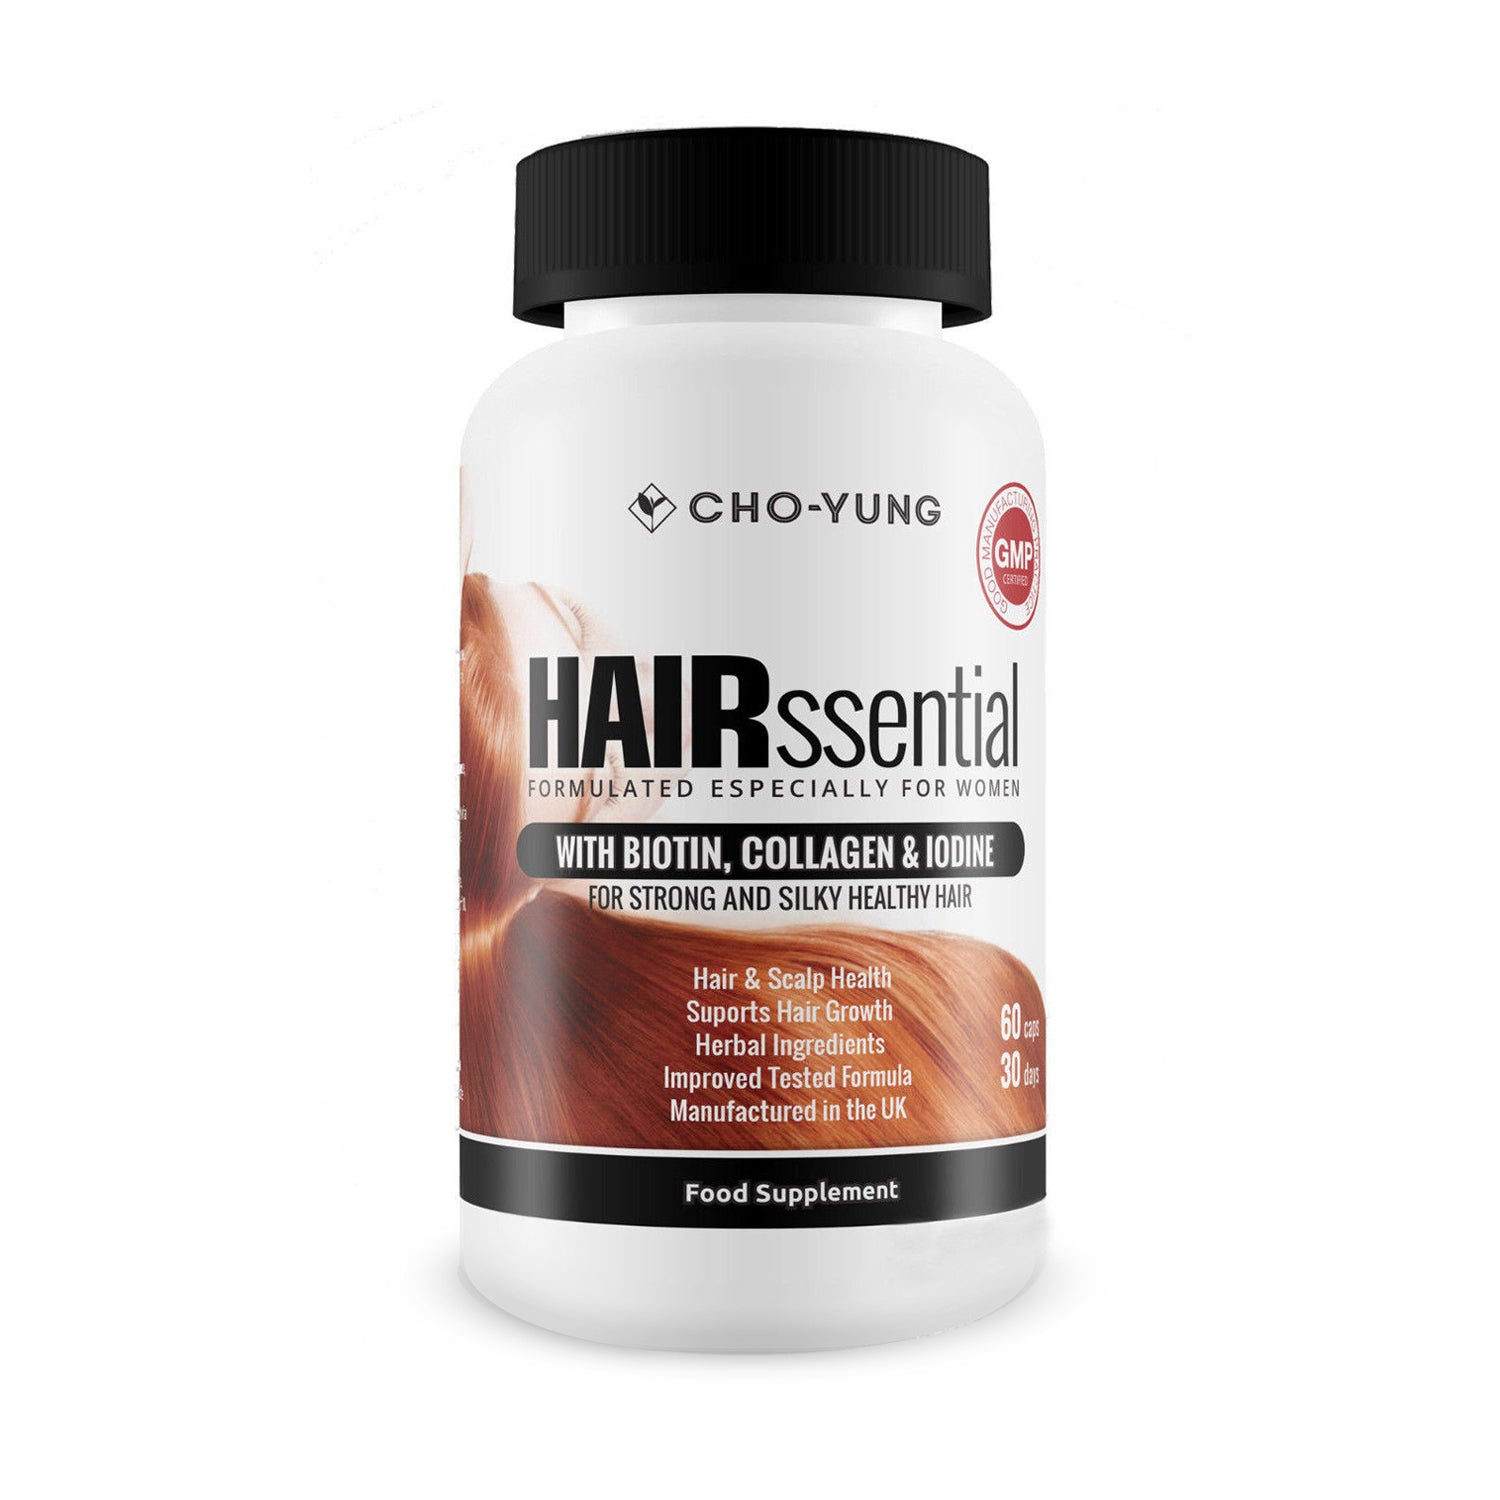 Biotin HAIRssential - For Women - For Strong and Silky Hair